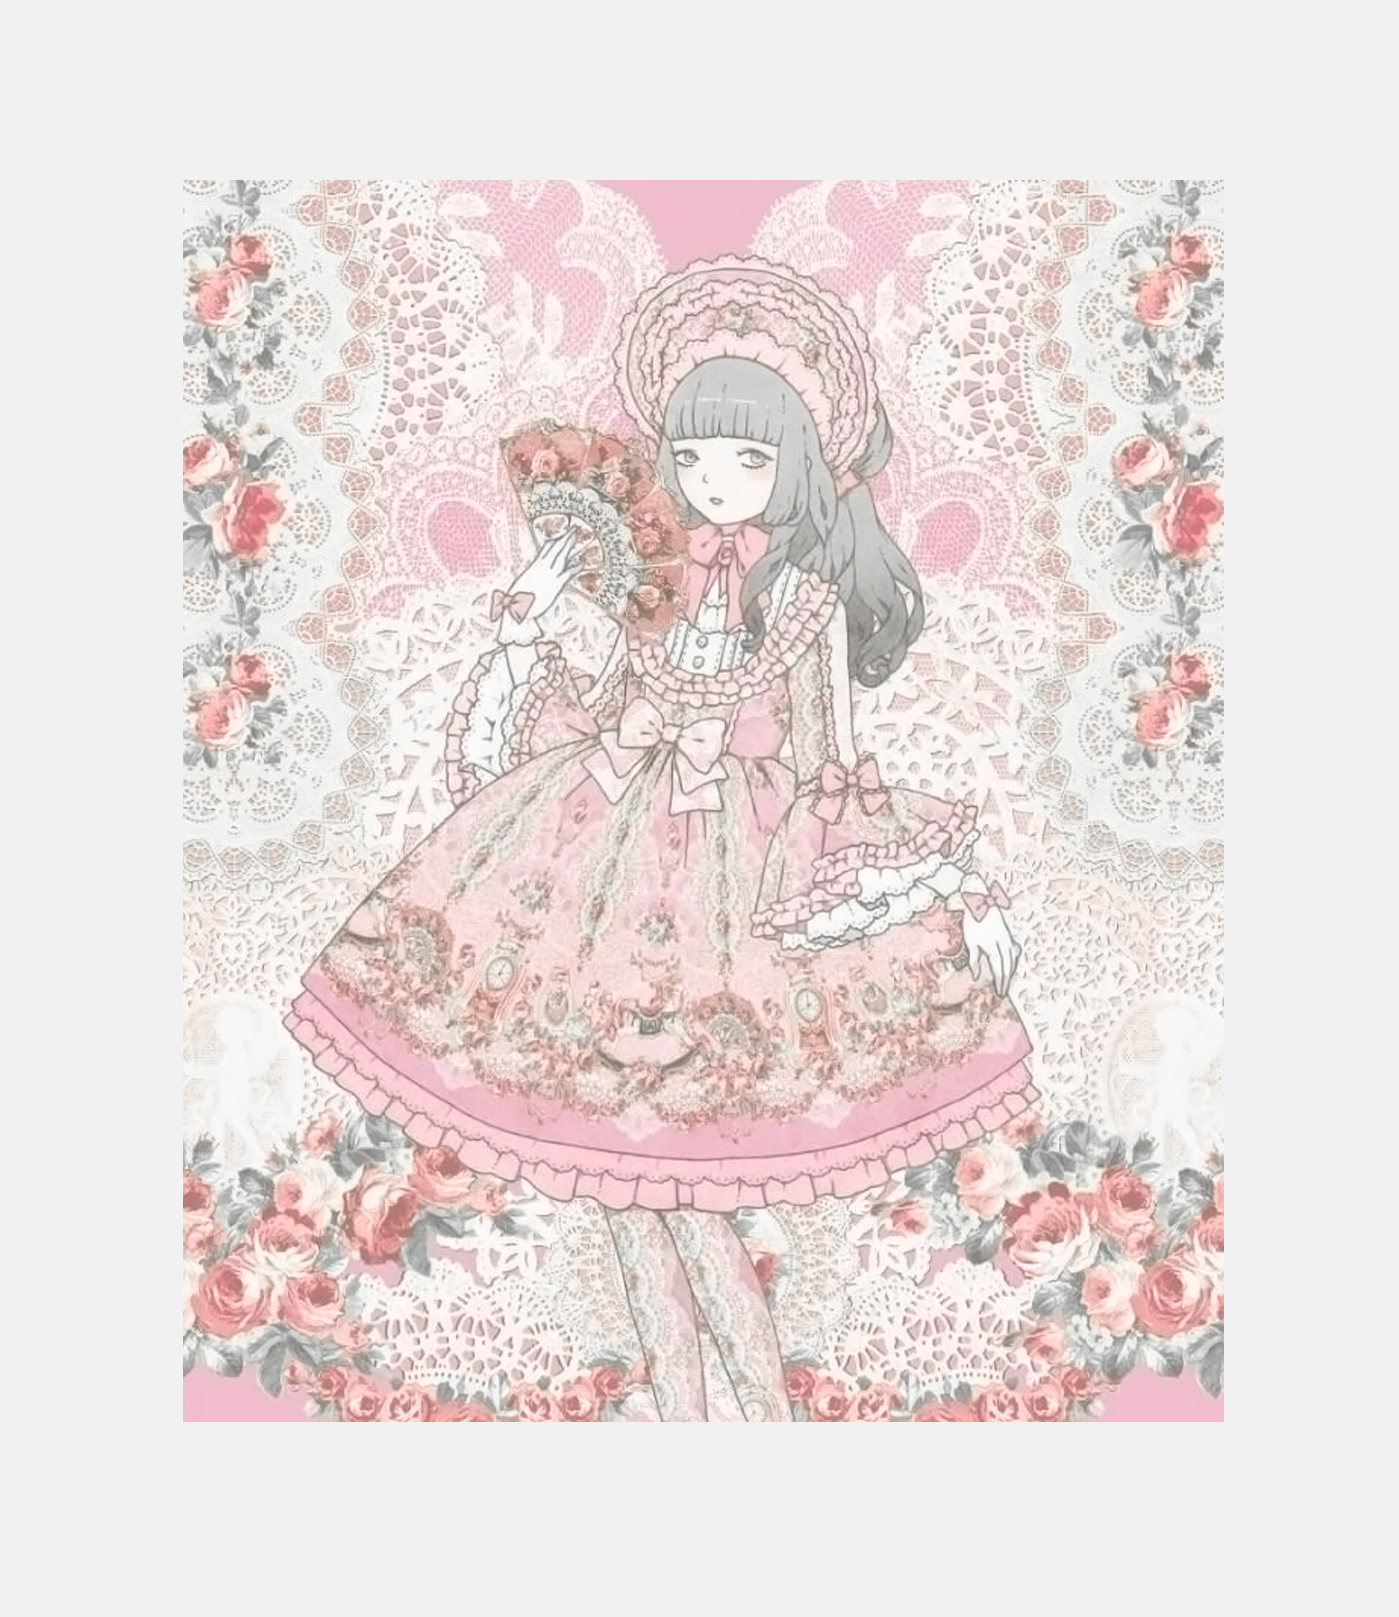 Promotional art by     Imai Kira   for a Lolita Fashion brand  Angelic Pretty